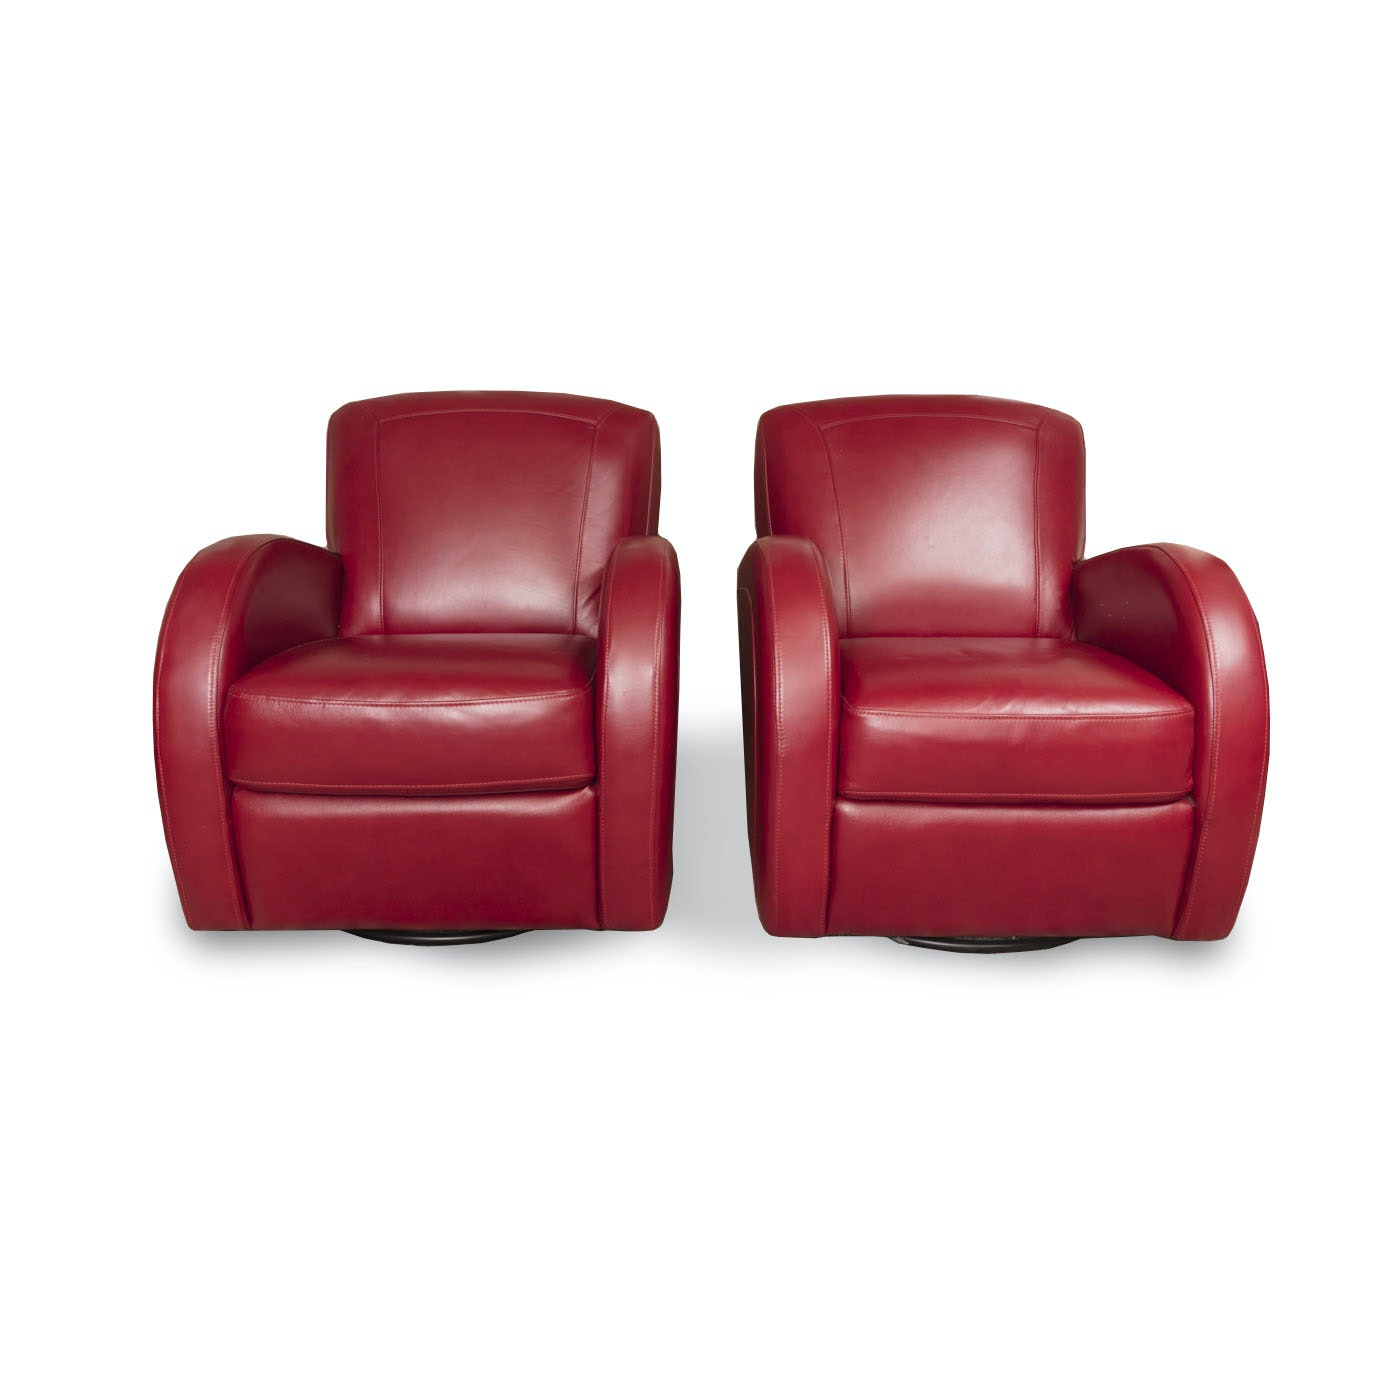 Pair Of Red Leather Club Chairs By Superb Creation Ltd. ...